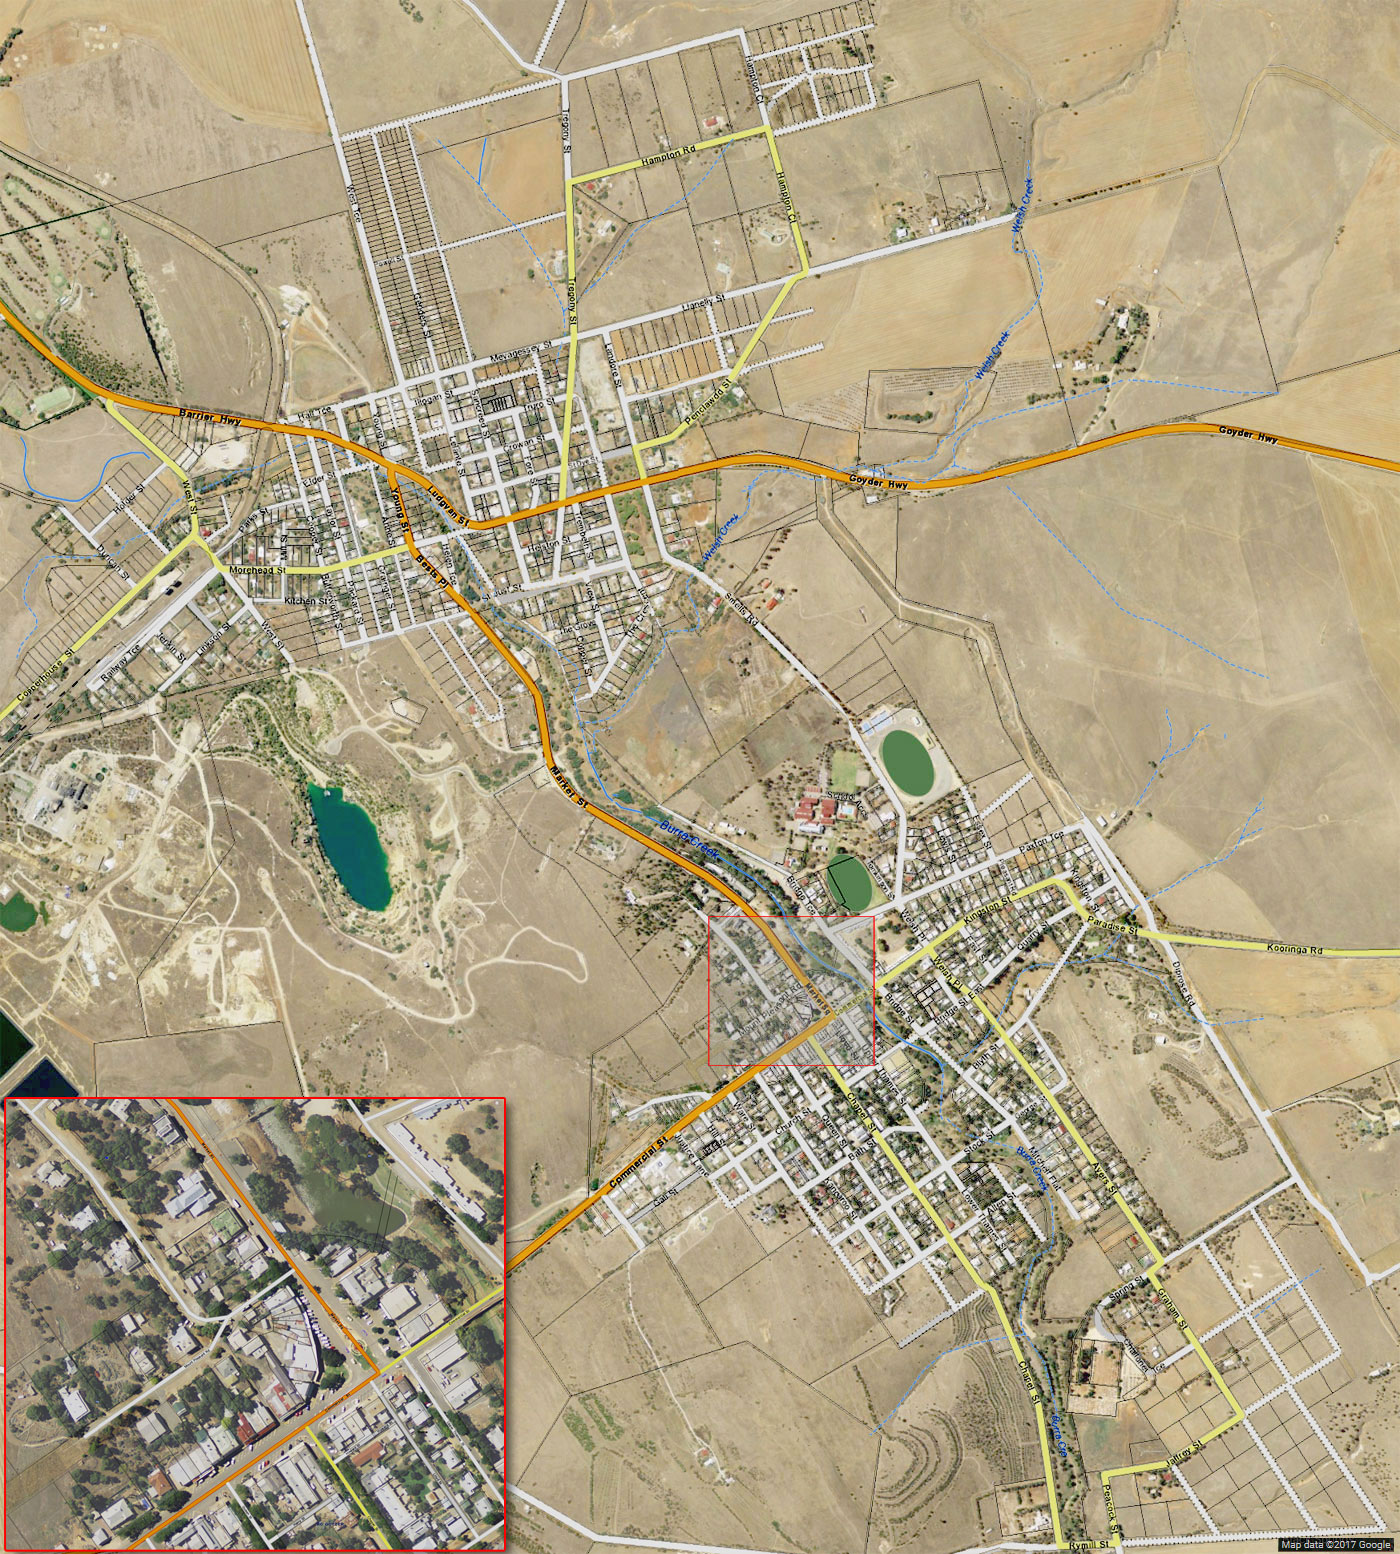 interactive map of the town of Burra